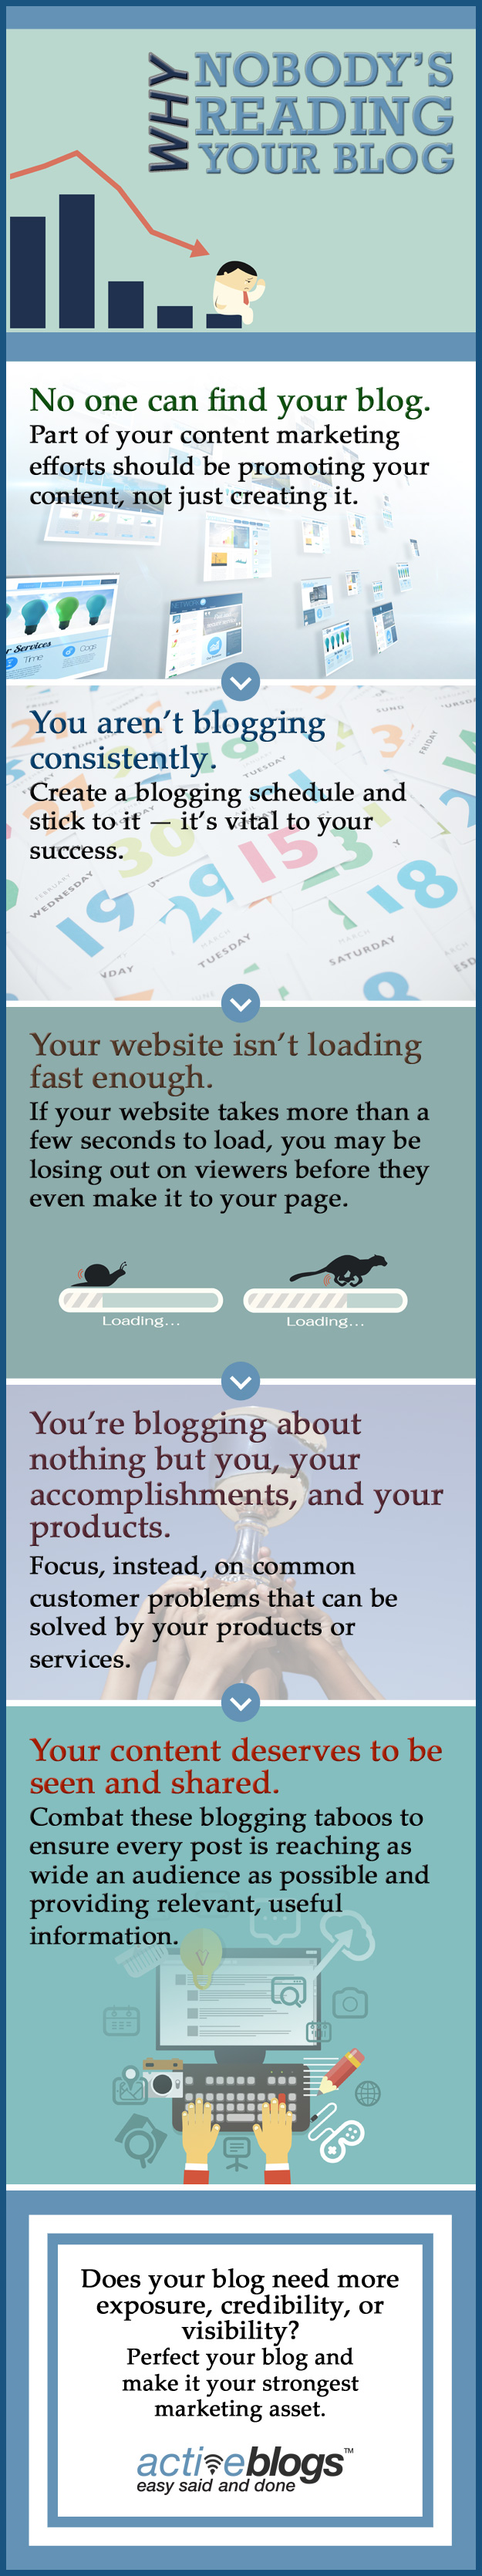 Active Blogs infographic: Why Nobodys Reading Your Blog